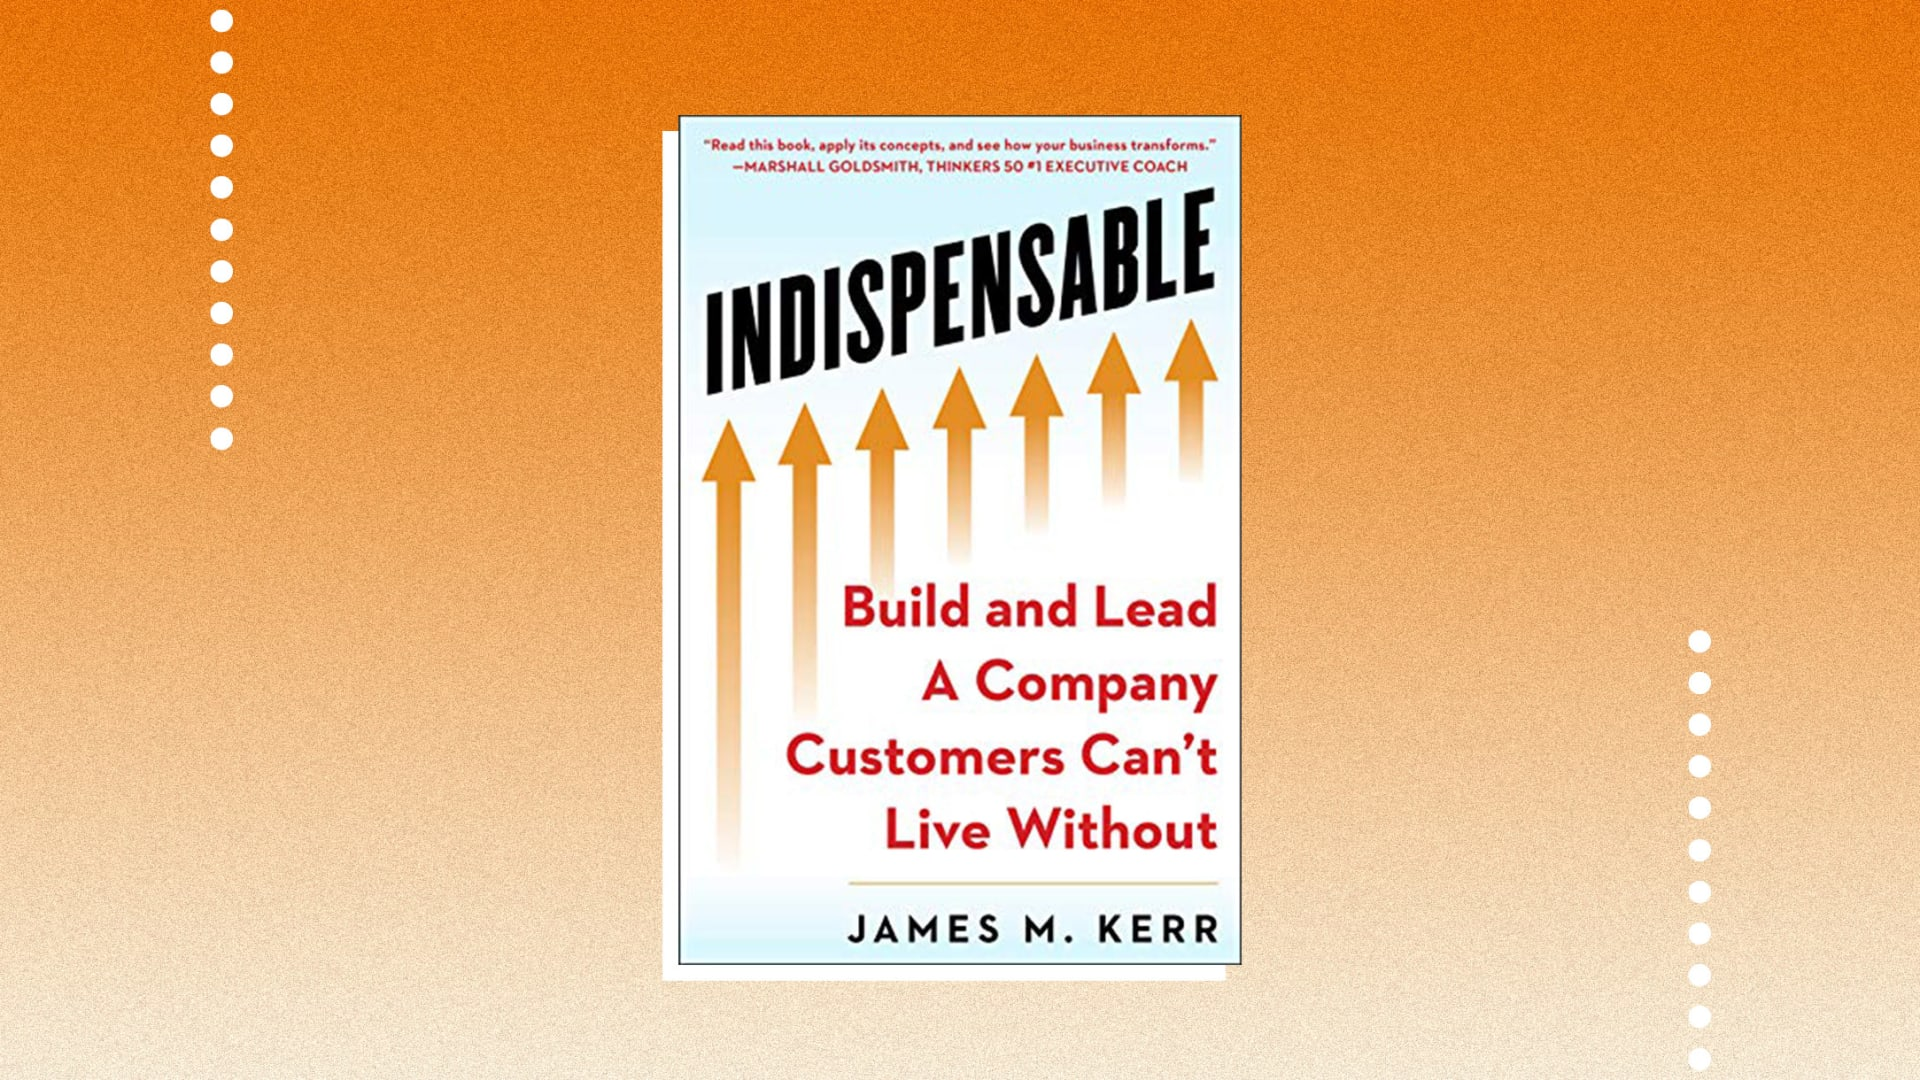 How to Build and Lead an Indispensable Business